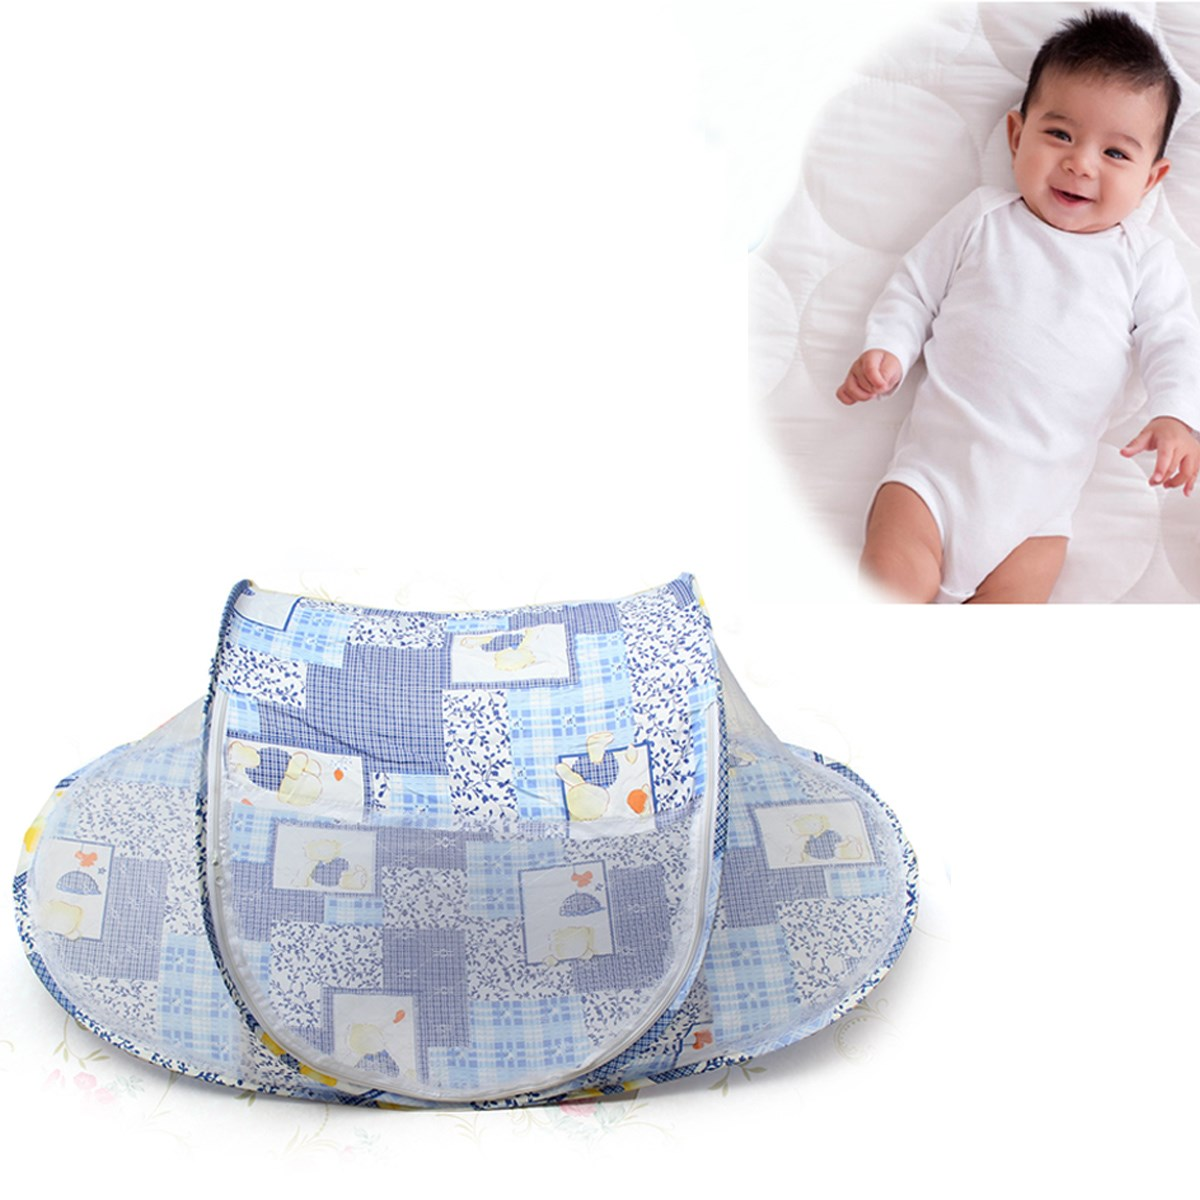 New Portable Foldable Baby Mosquito Tent Bed Cute Kids Travel Infant Instant Crib Netting Multi-Function Nursery Bedding Sets(China (Mainland))